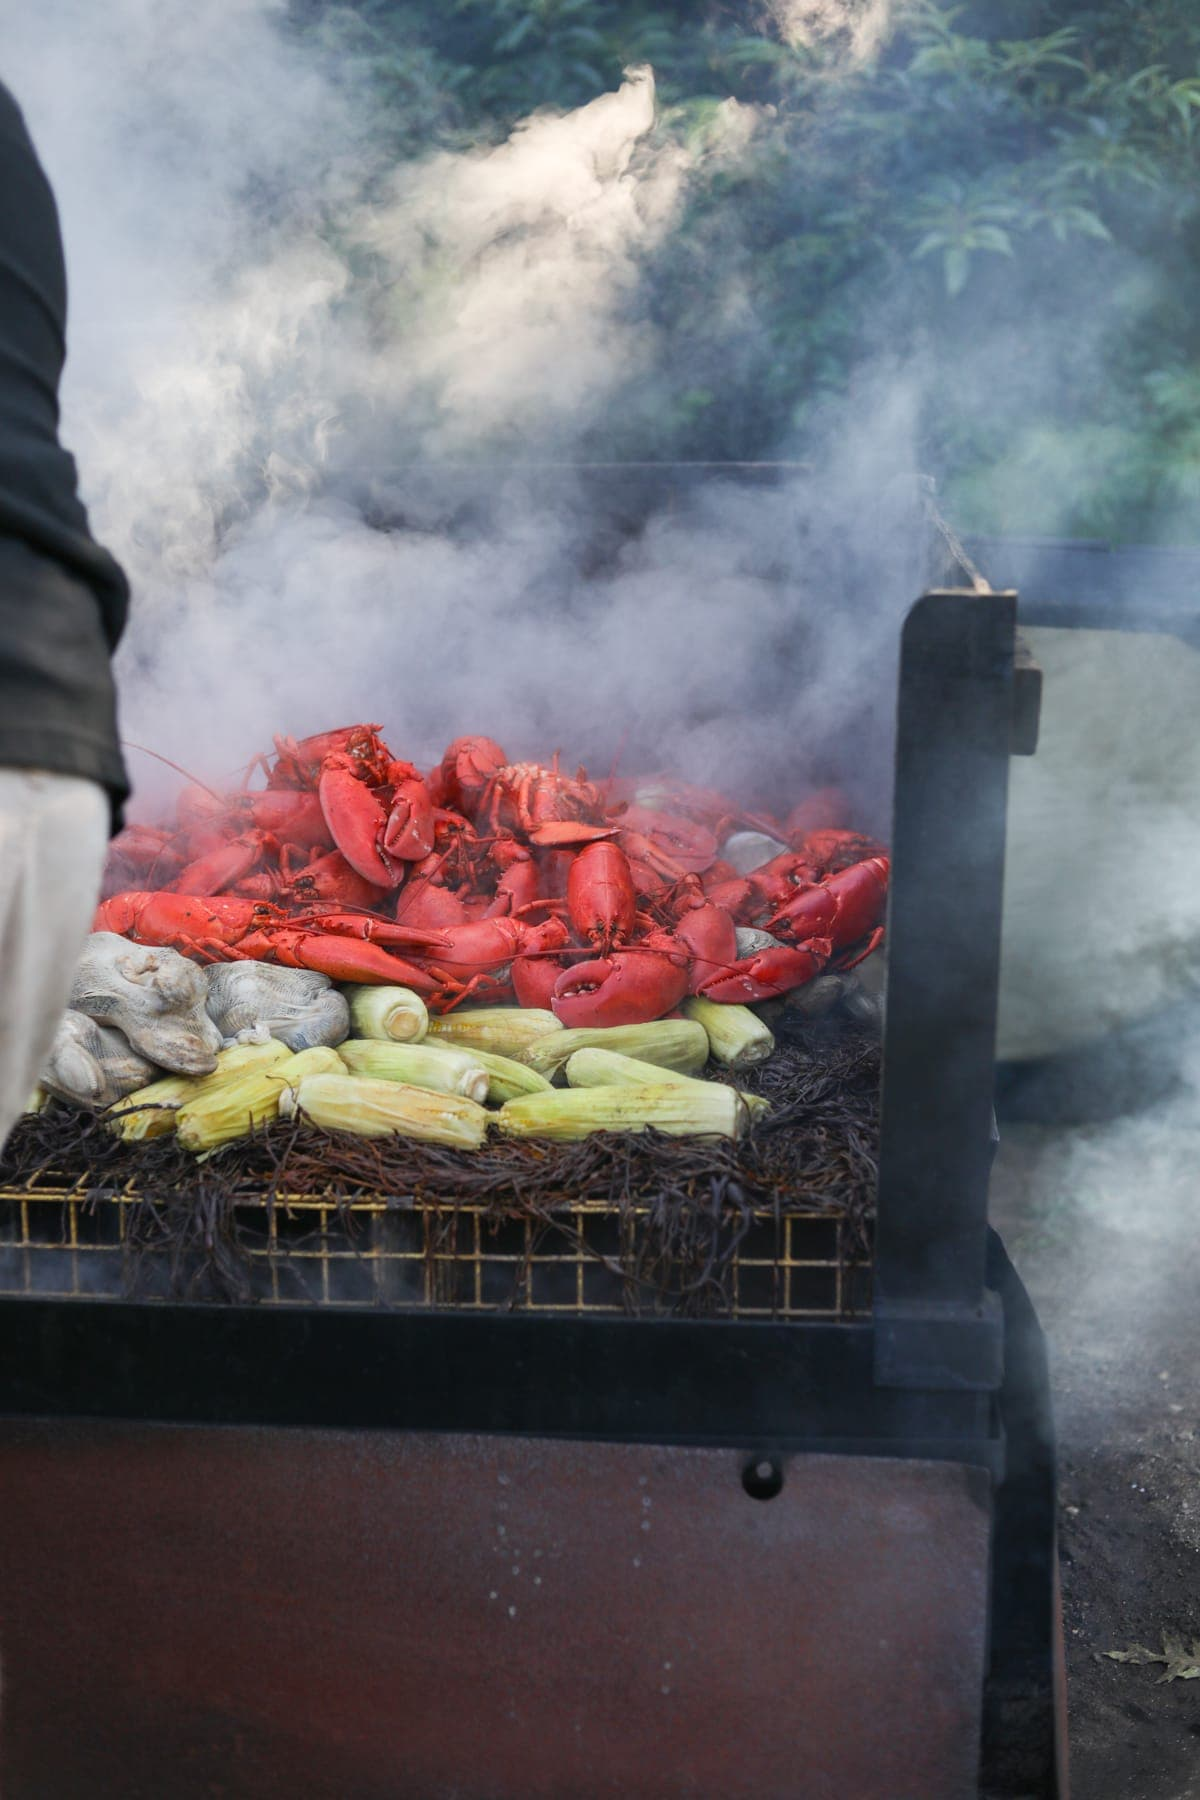 A person cooking lobsters and corn